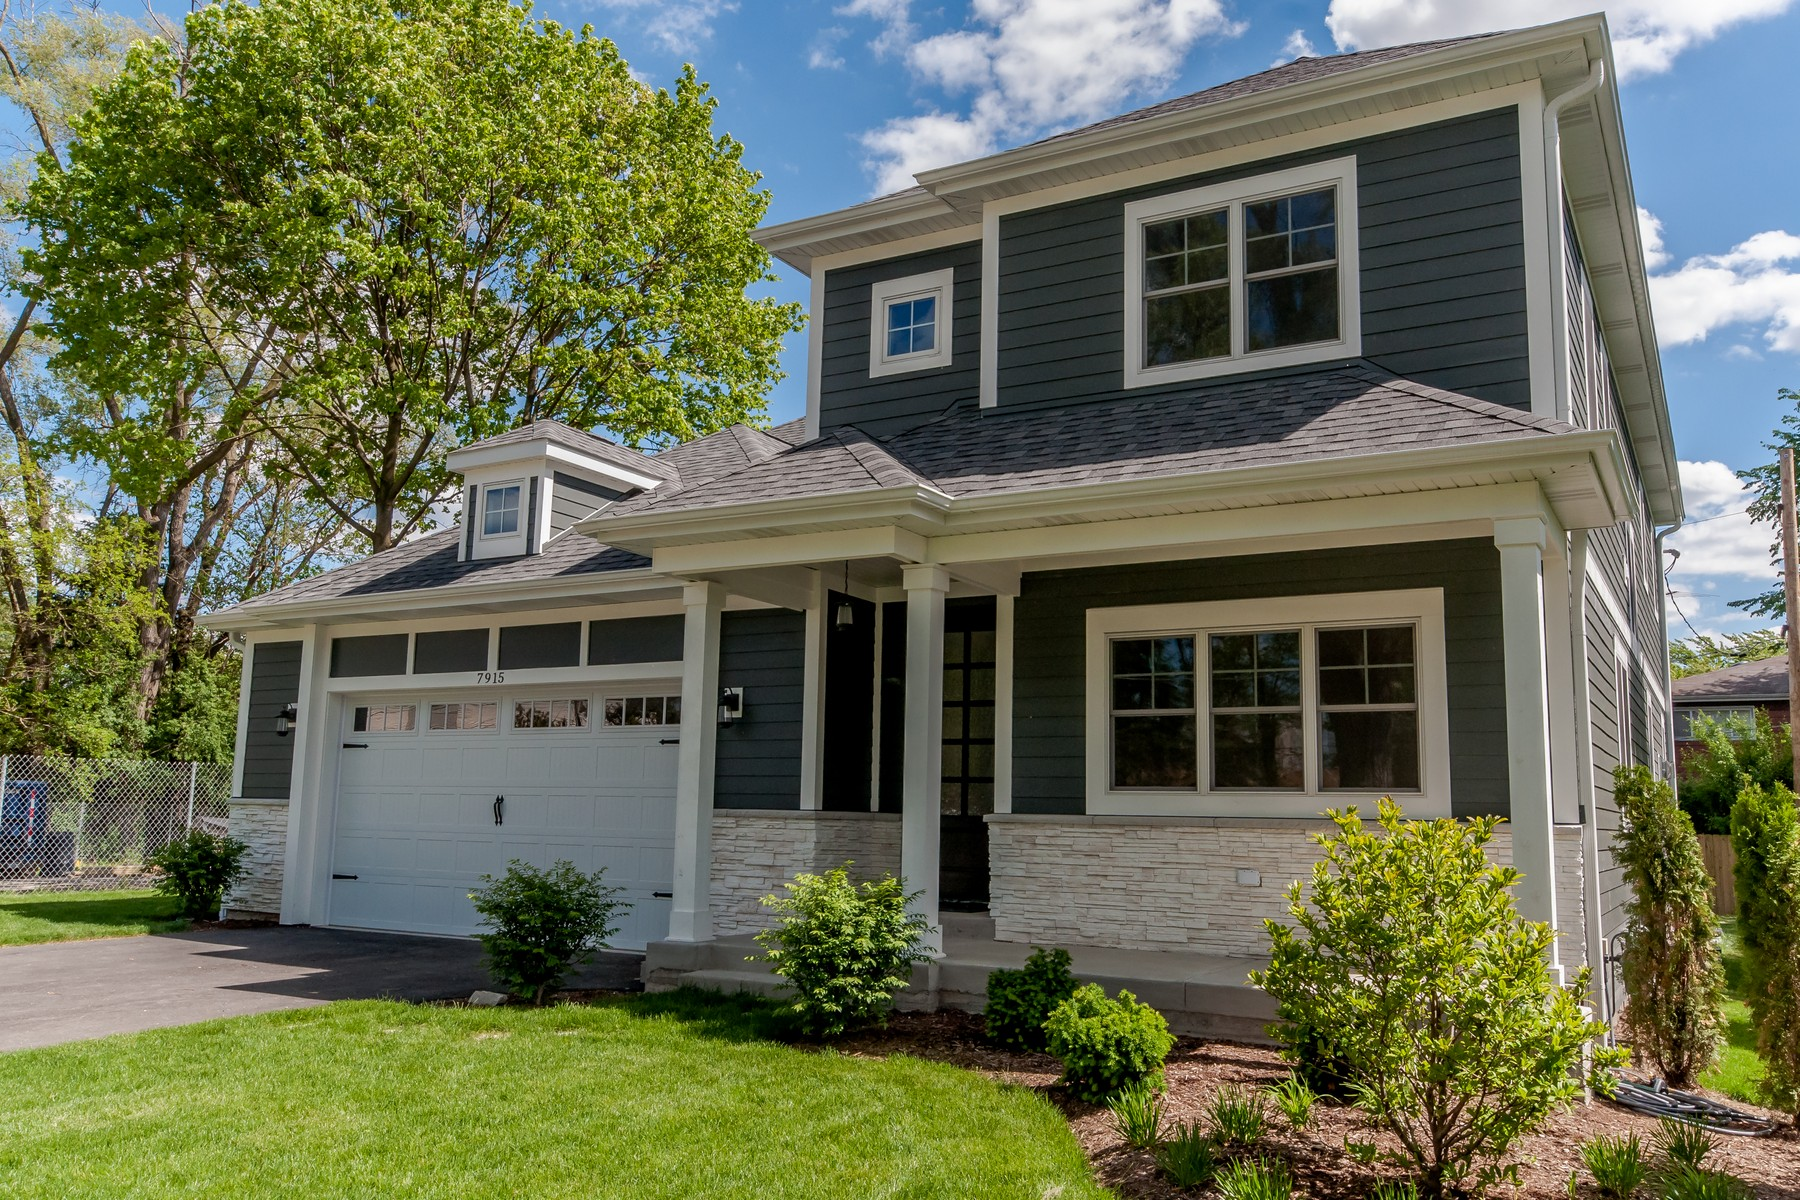 Single Family Home for Sale at Stunning New Construction 7915 Foster Street Morton Grove, Illinois 60053 United States